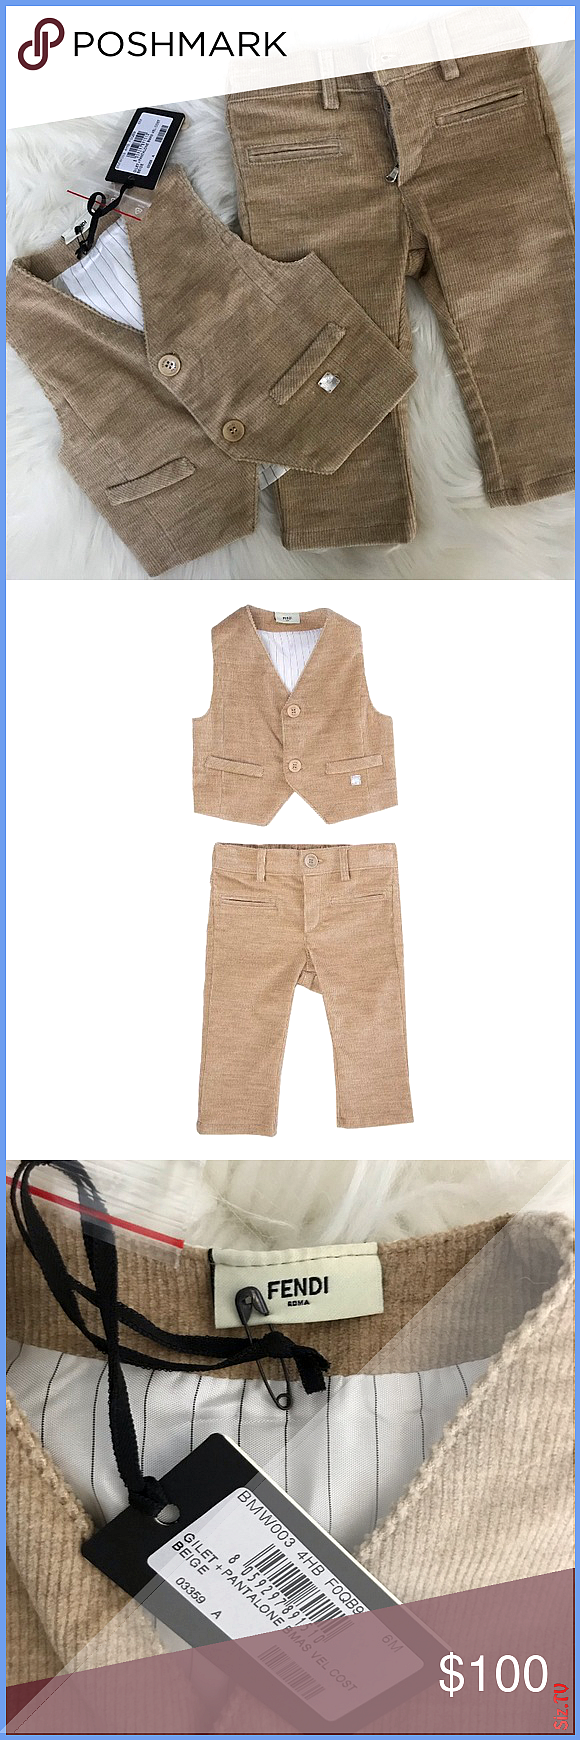 HP NWT Fendi Roma Baby Boy Vest 038 Pants Set Perfect baby shower gift or splurge for your little man New with tags Courdroy fabric 90 HP NWT Fendi Roma Baby Boy Vest 038...